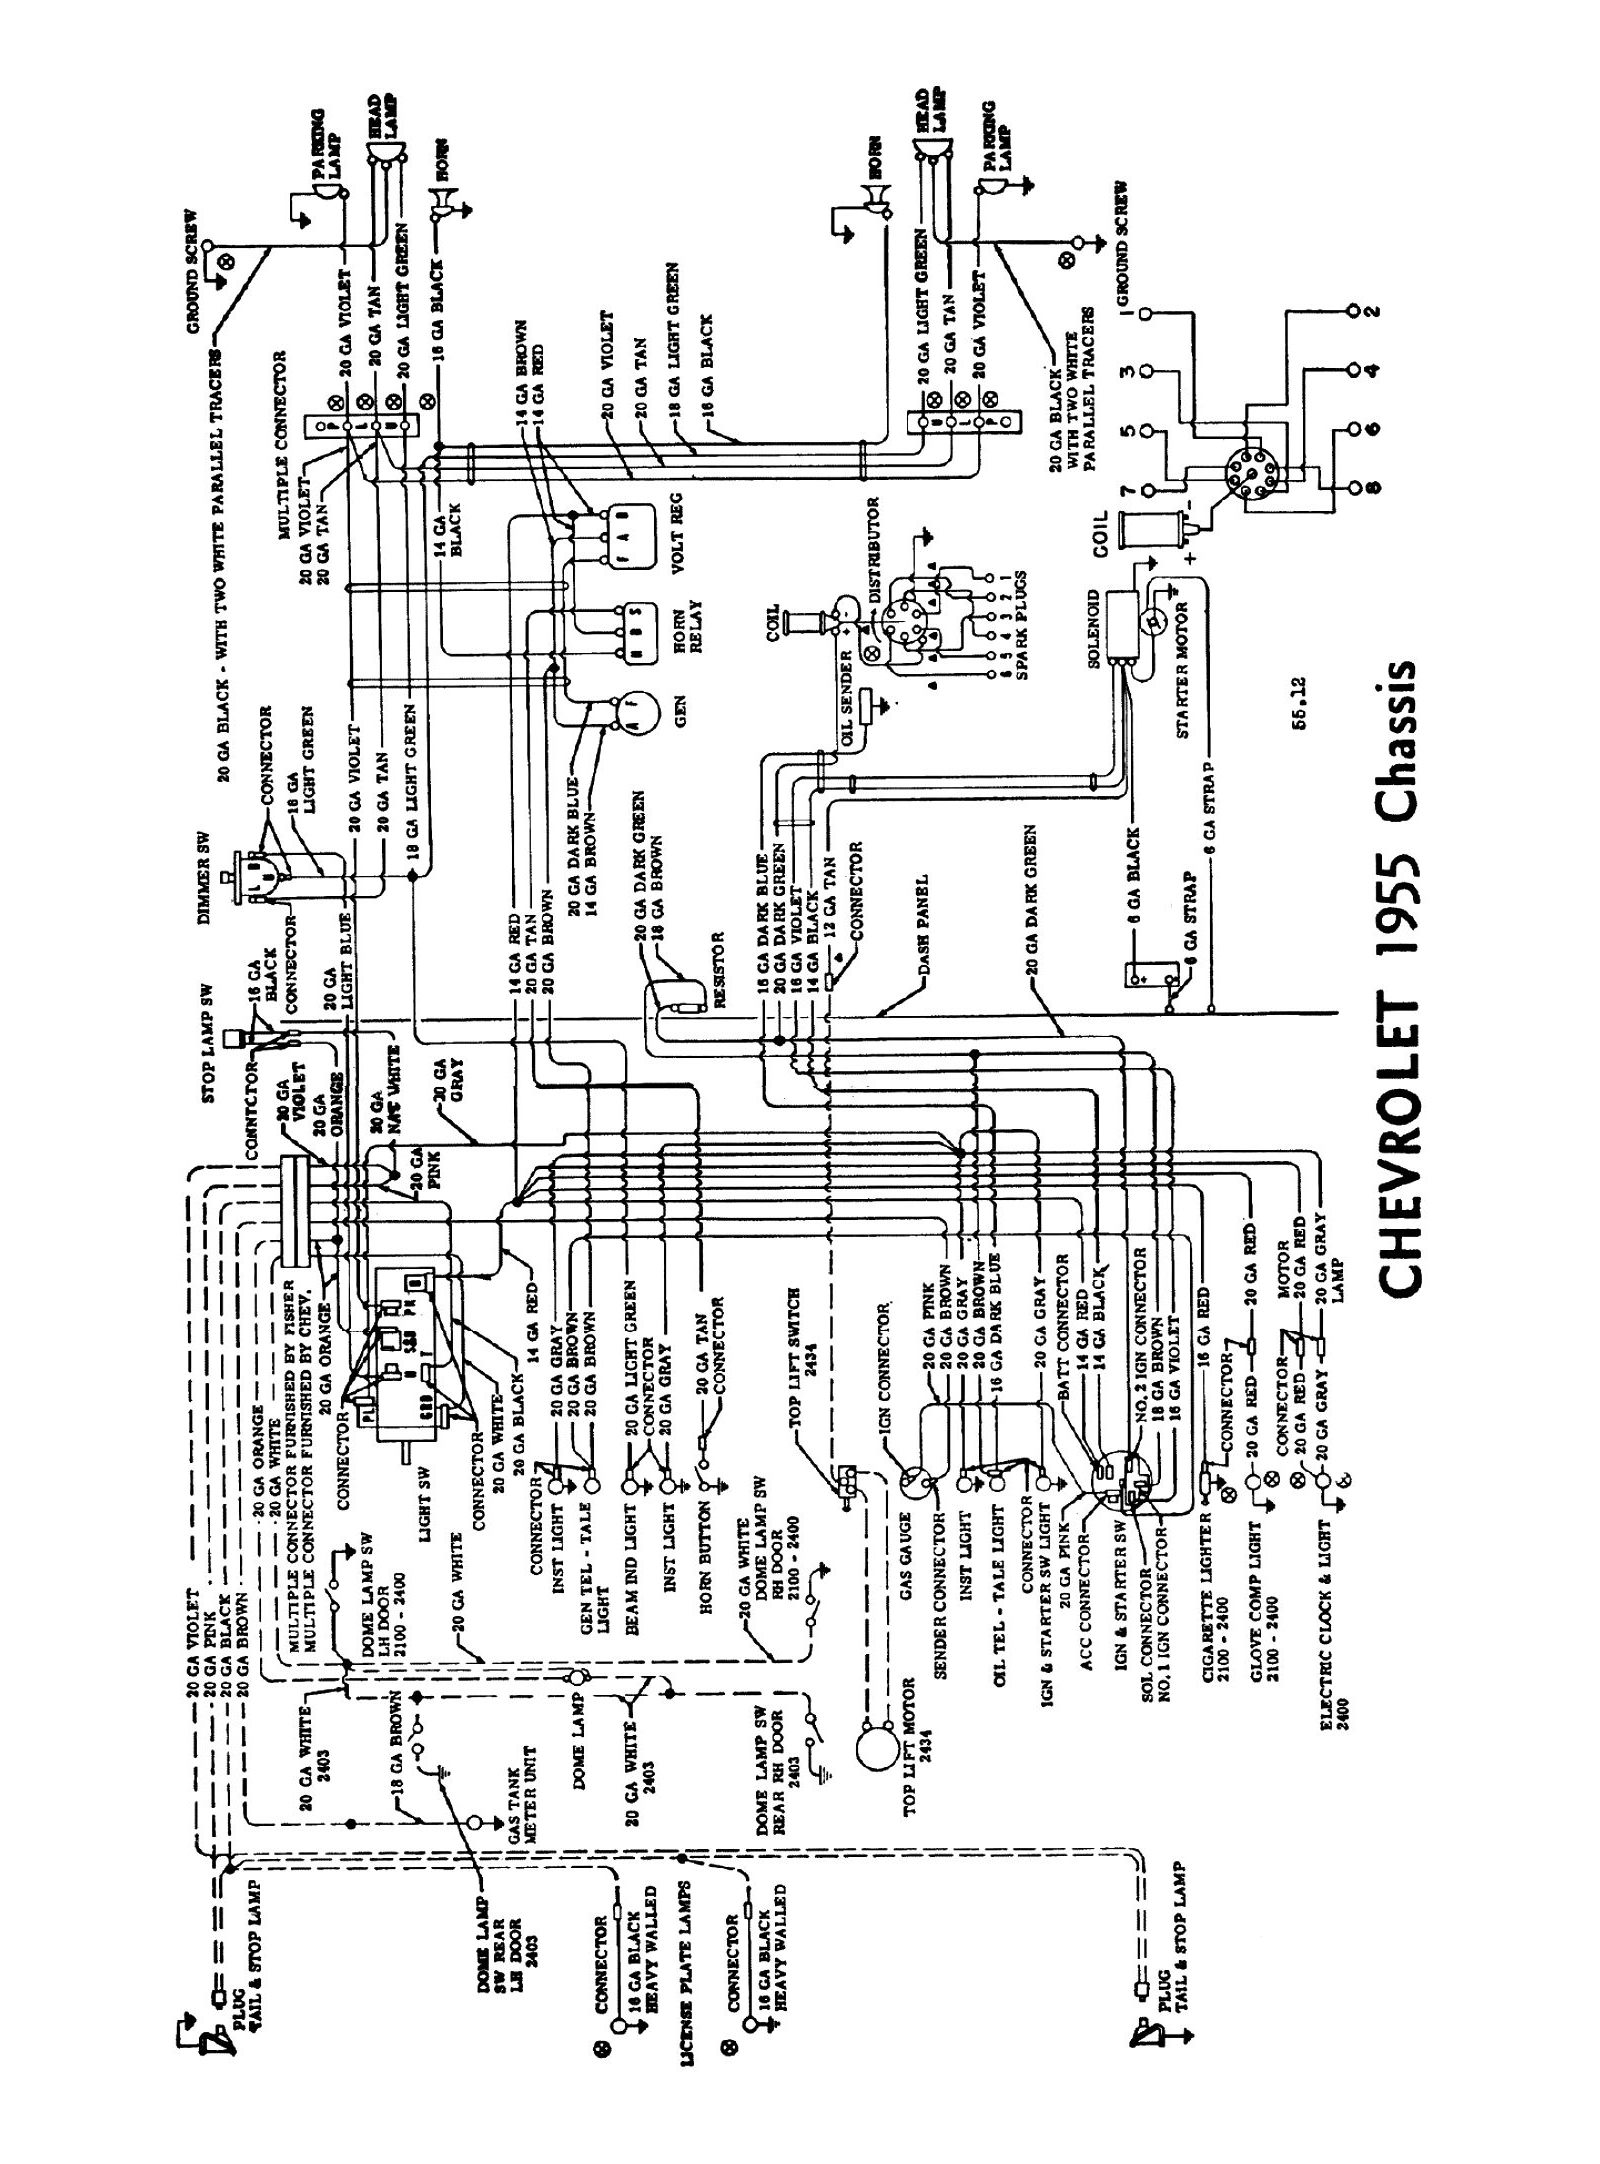 classic chevrolet chevy wiring electrical diagram manual